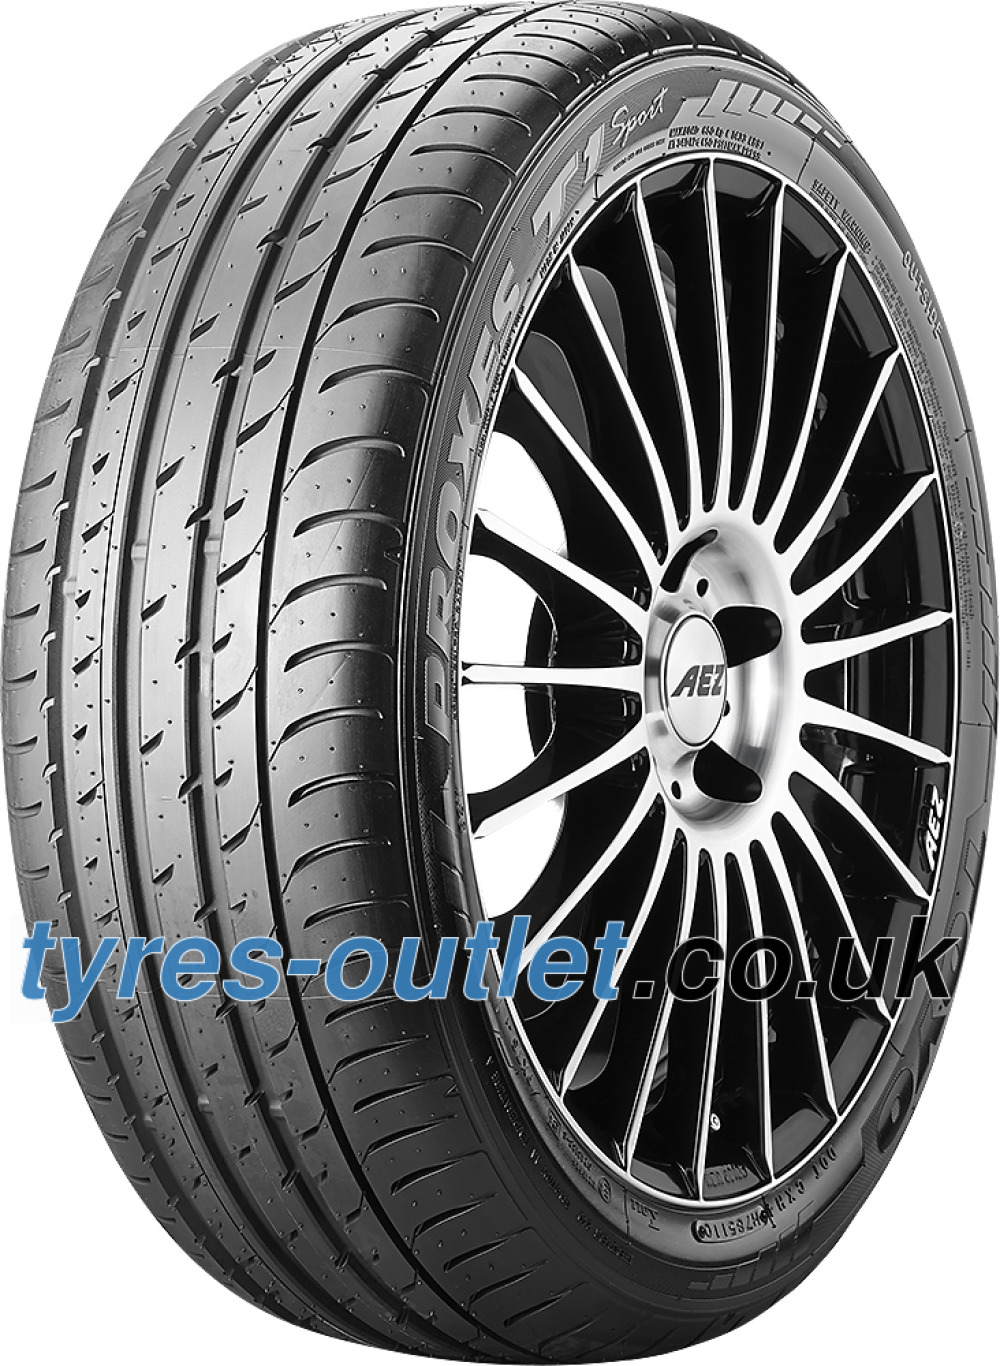 Toyo Proxes T1 Sport ( 275/35 ZR19 (100Y) XL with rim protection ridge (FSL) )